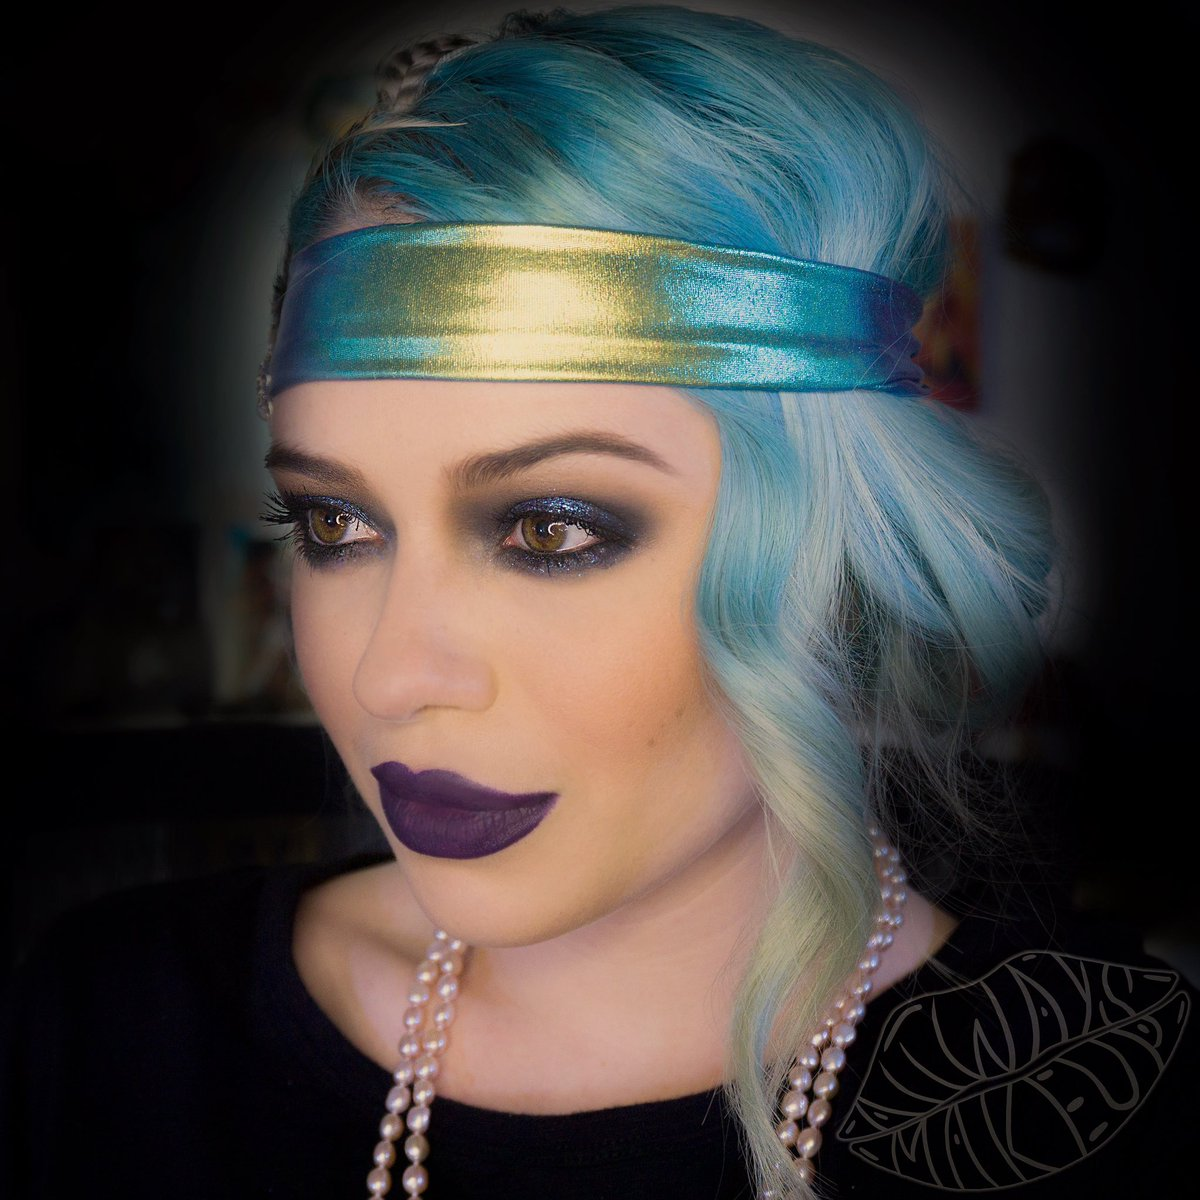 Happy New Year!!  Modern 20s Flapper makeup we did live on my Twitch channel for a New Years party! Be sure to follow my Twitch channel!     #newyears #newyearsmakeup #20smakeup #20sfashion #modernflapper #makeup #makeupartist #twitch #twitchstreamer